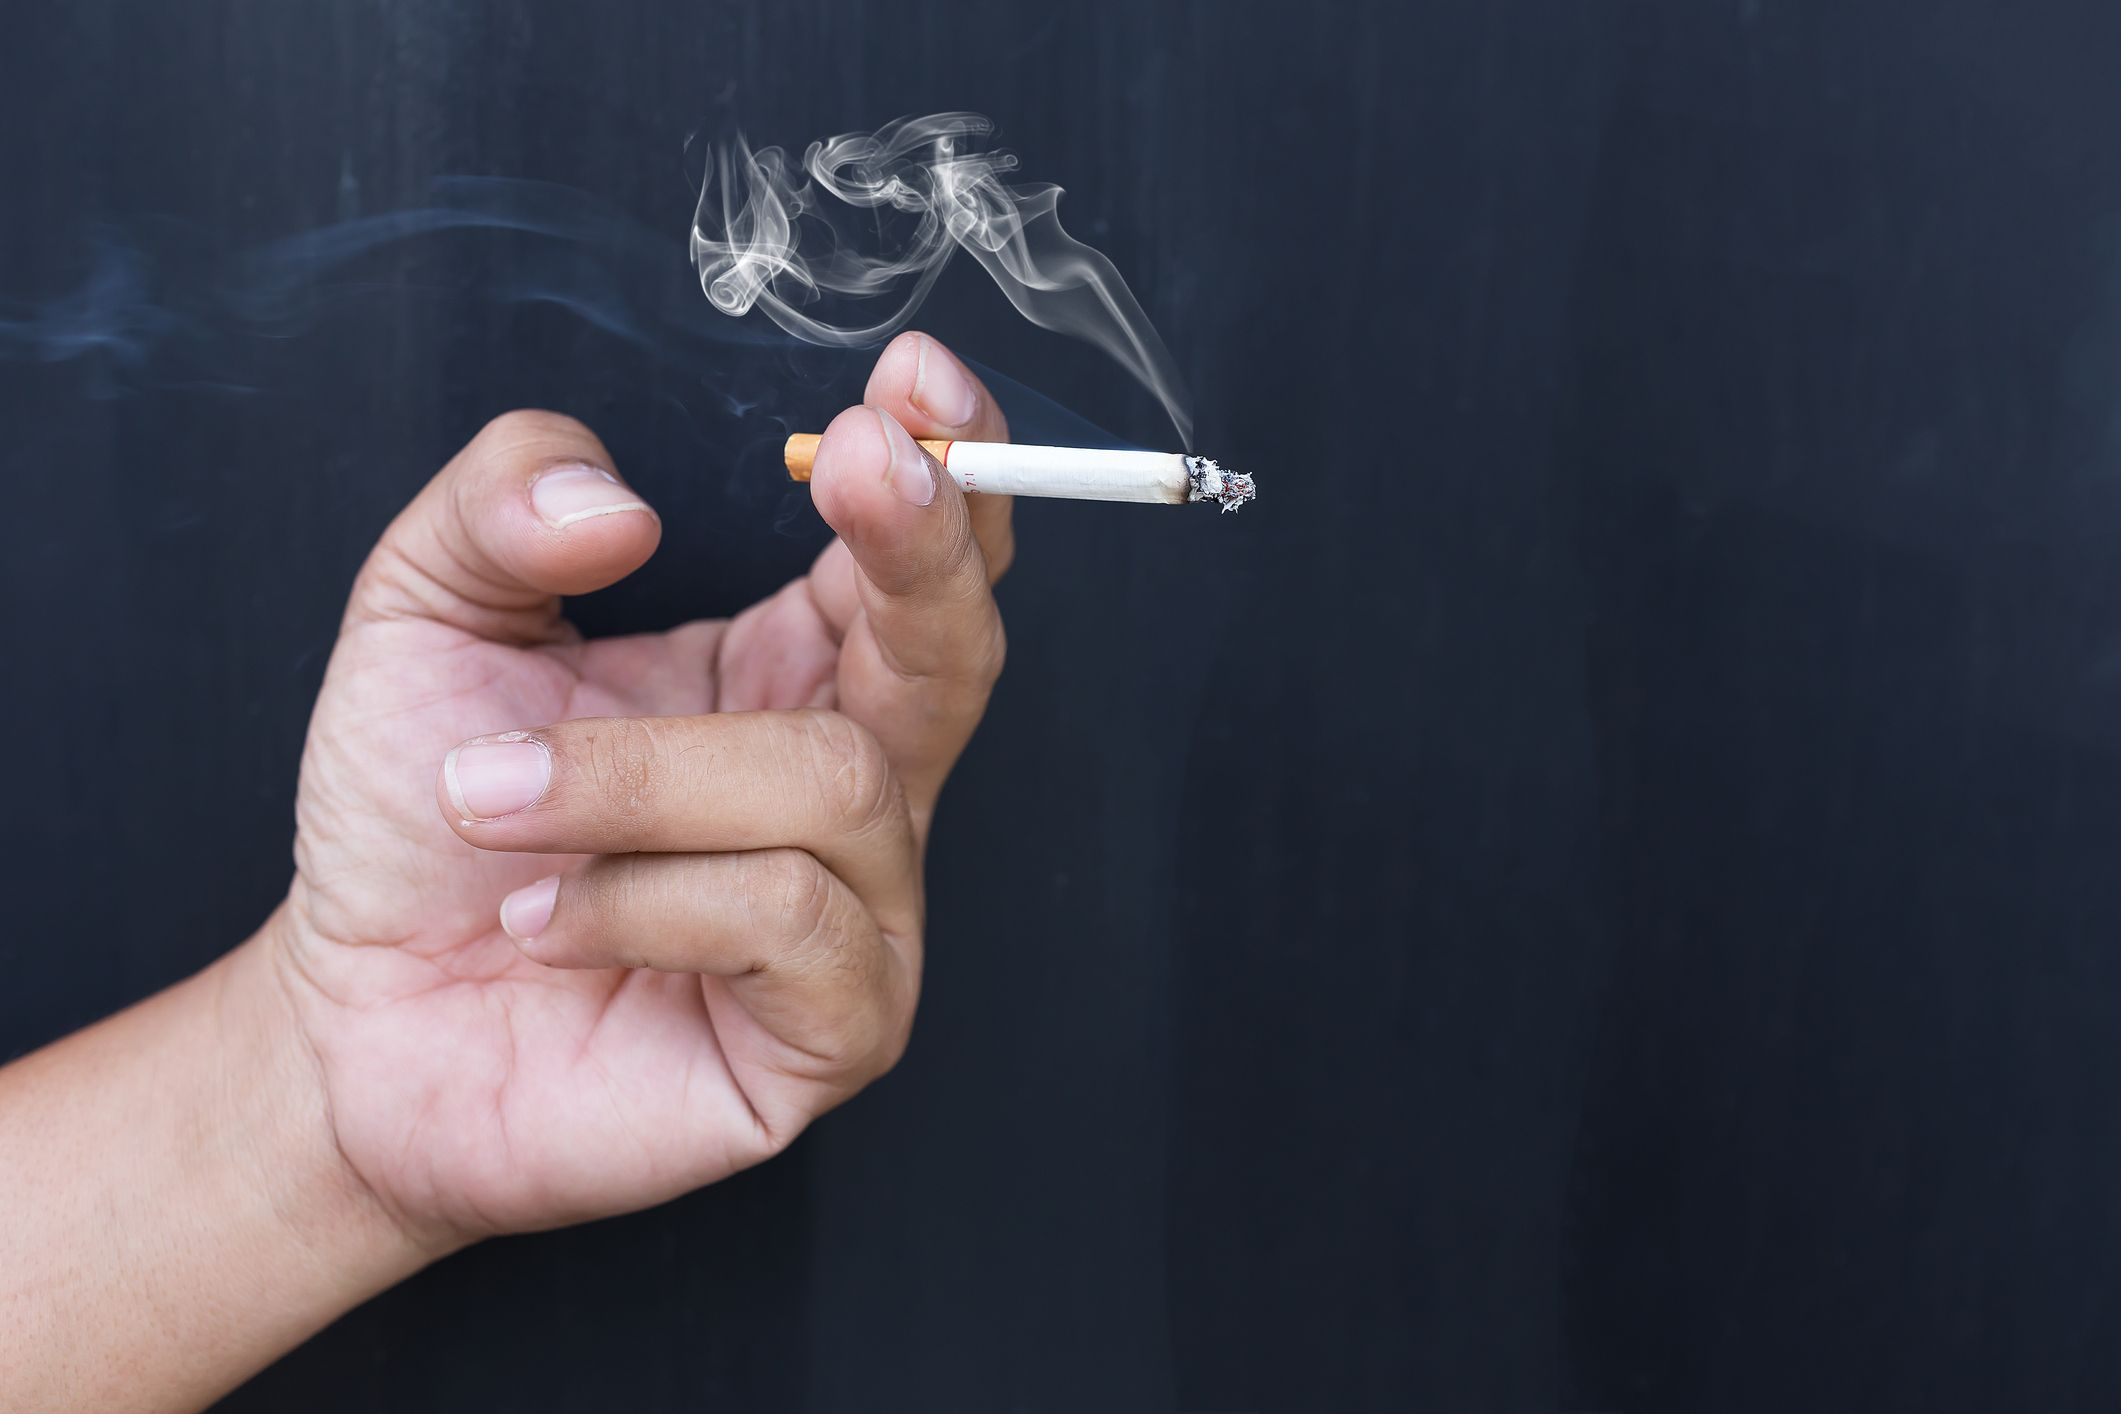 Fathers Nicotine Use Can Cause >> Smoking Raises Risk Of Adhd In Children By Changing Sperm Mice